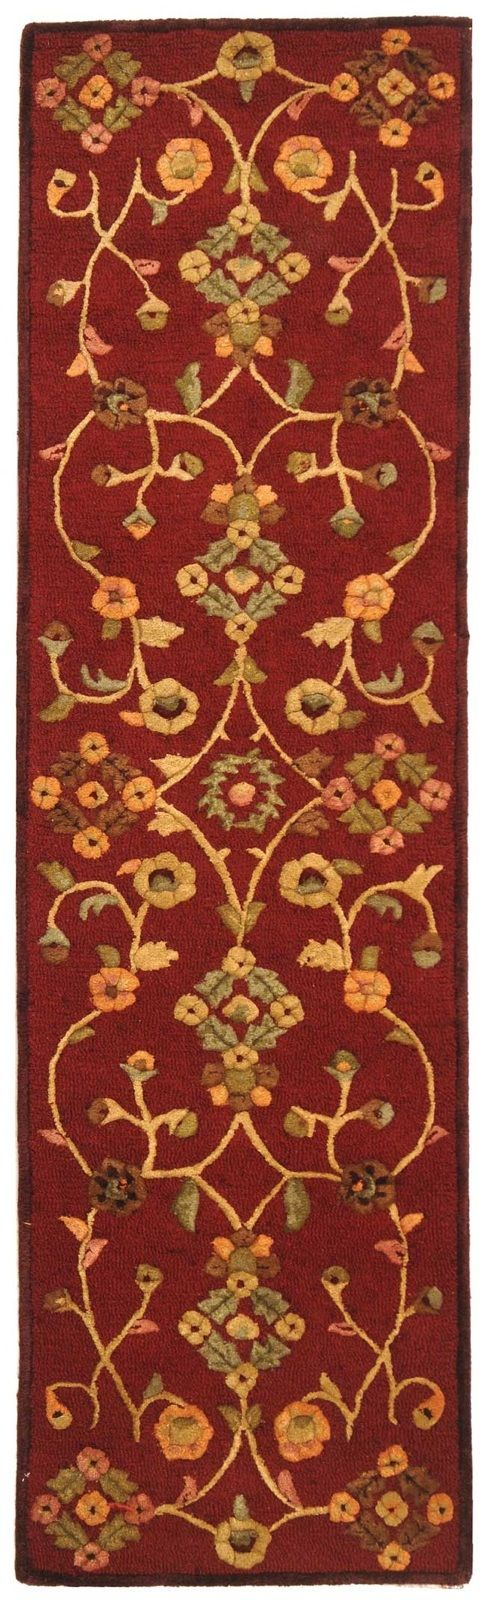 safavieh imperial transitional area rug collection